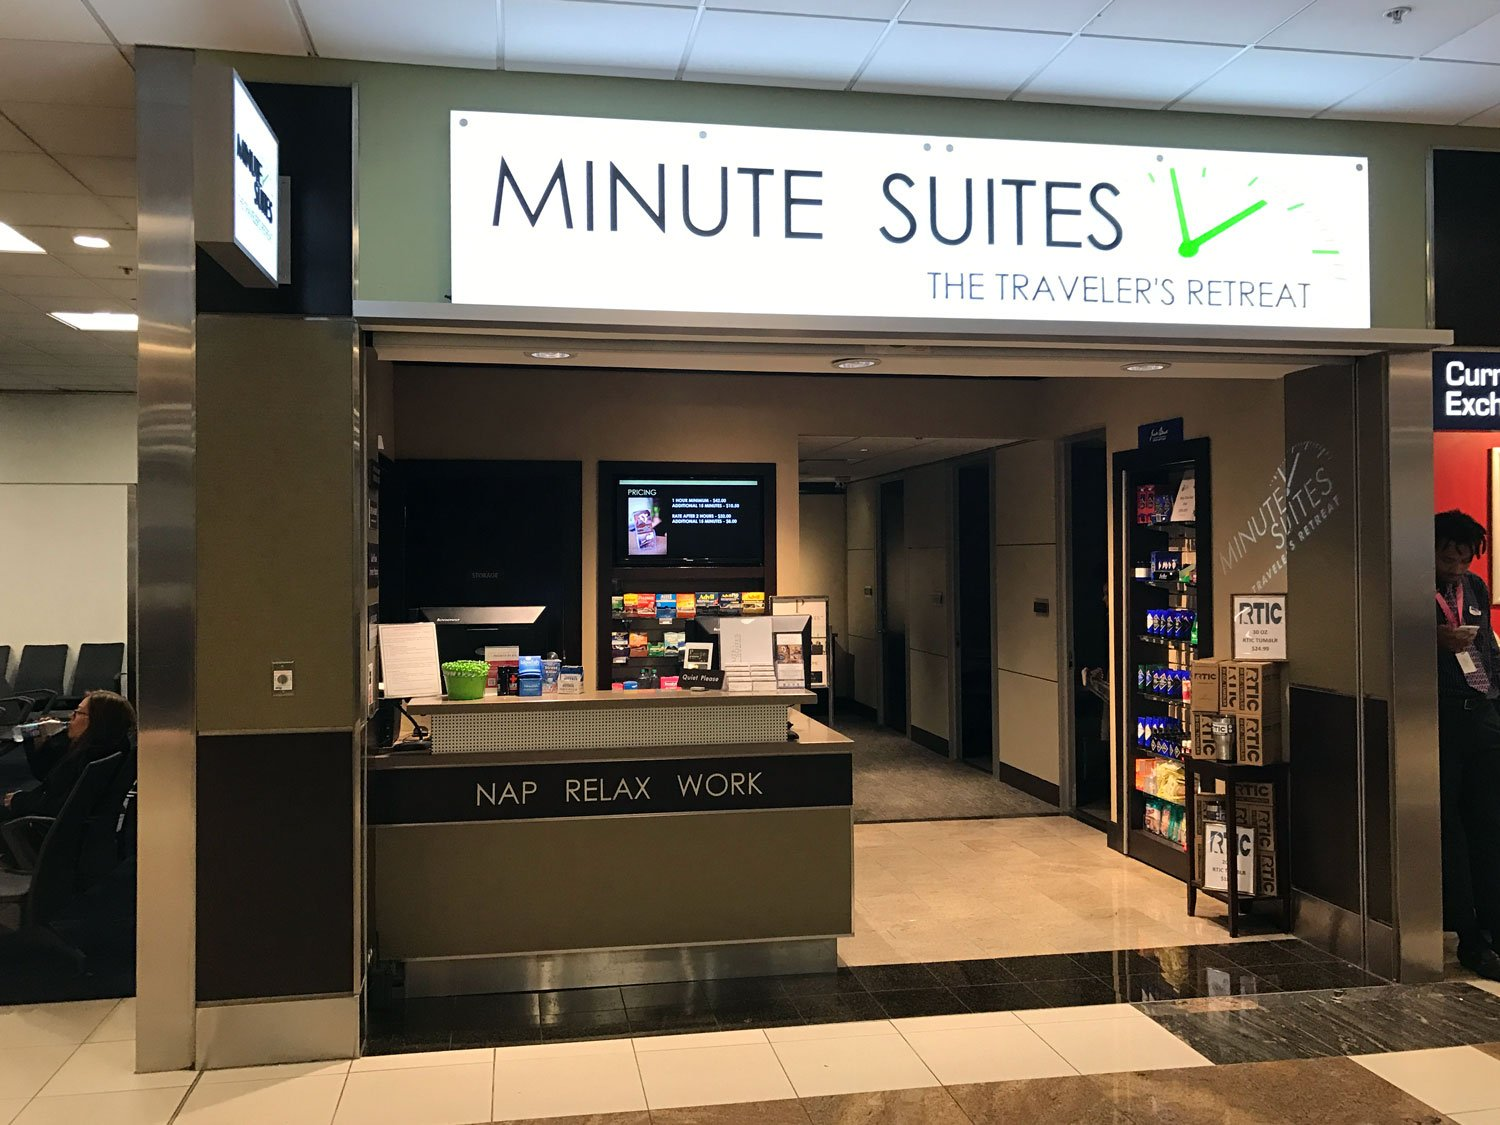 Minute suites at atlanta airport entrance